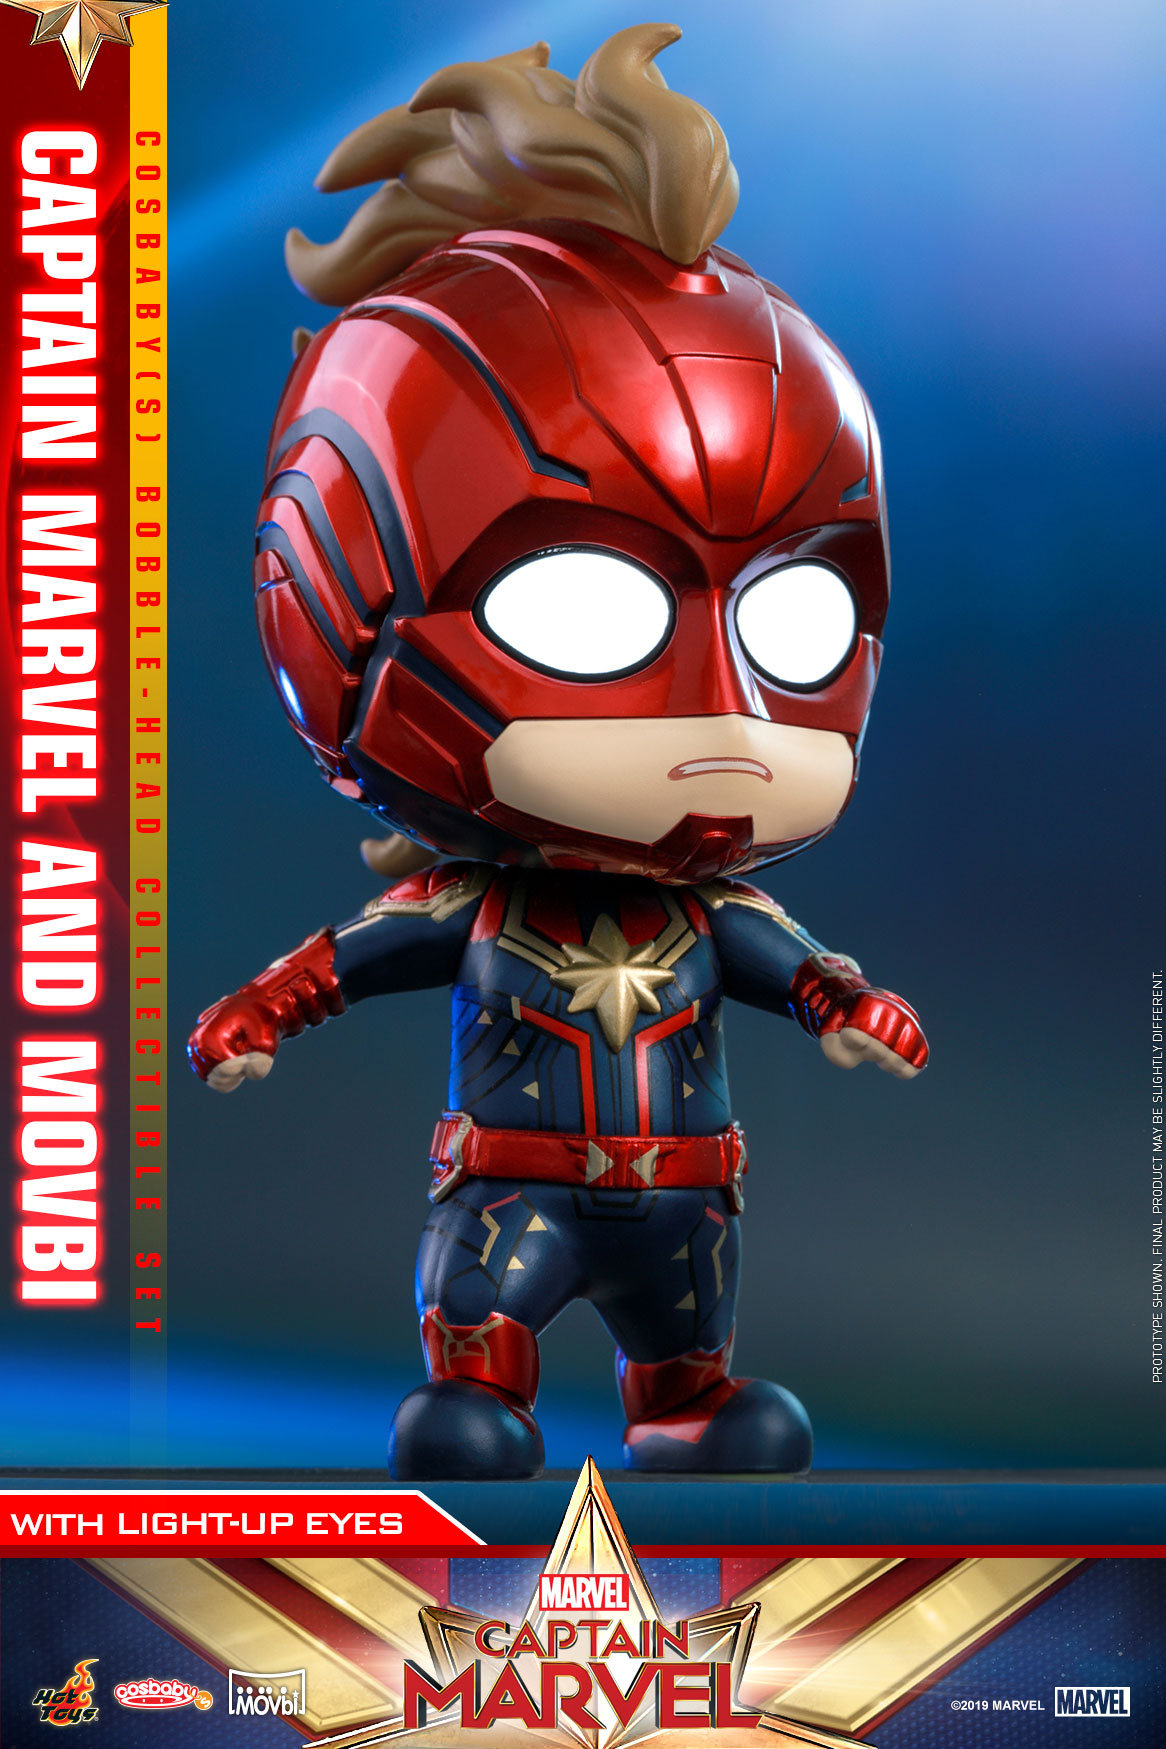 Hot-Toys---Captain-Marvel---Captain-Marvel-and-Movbi-Cosbaby-Bobble-head-Collectible-Set-(S)_PR3